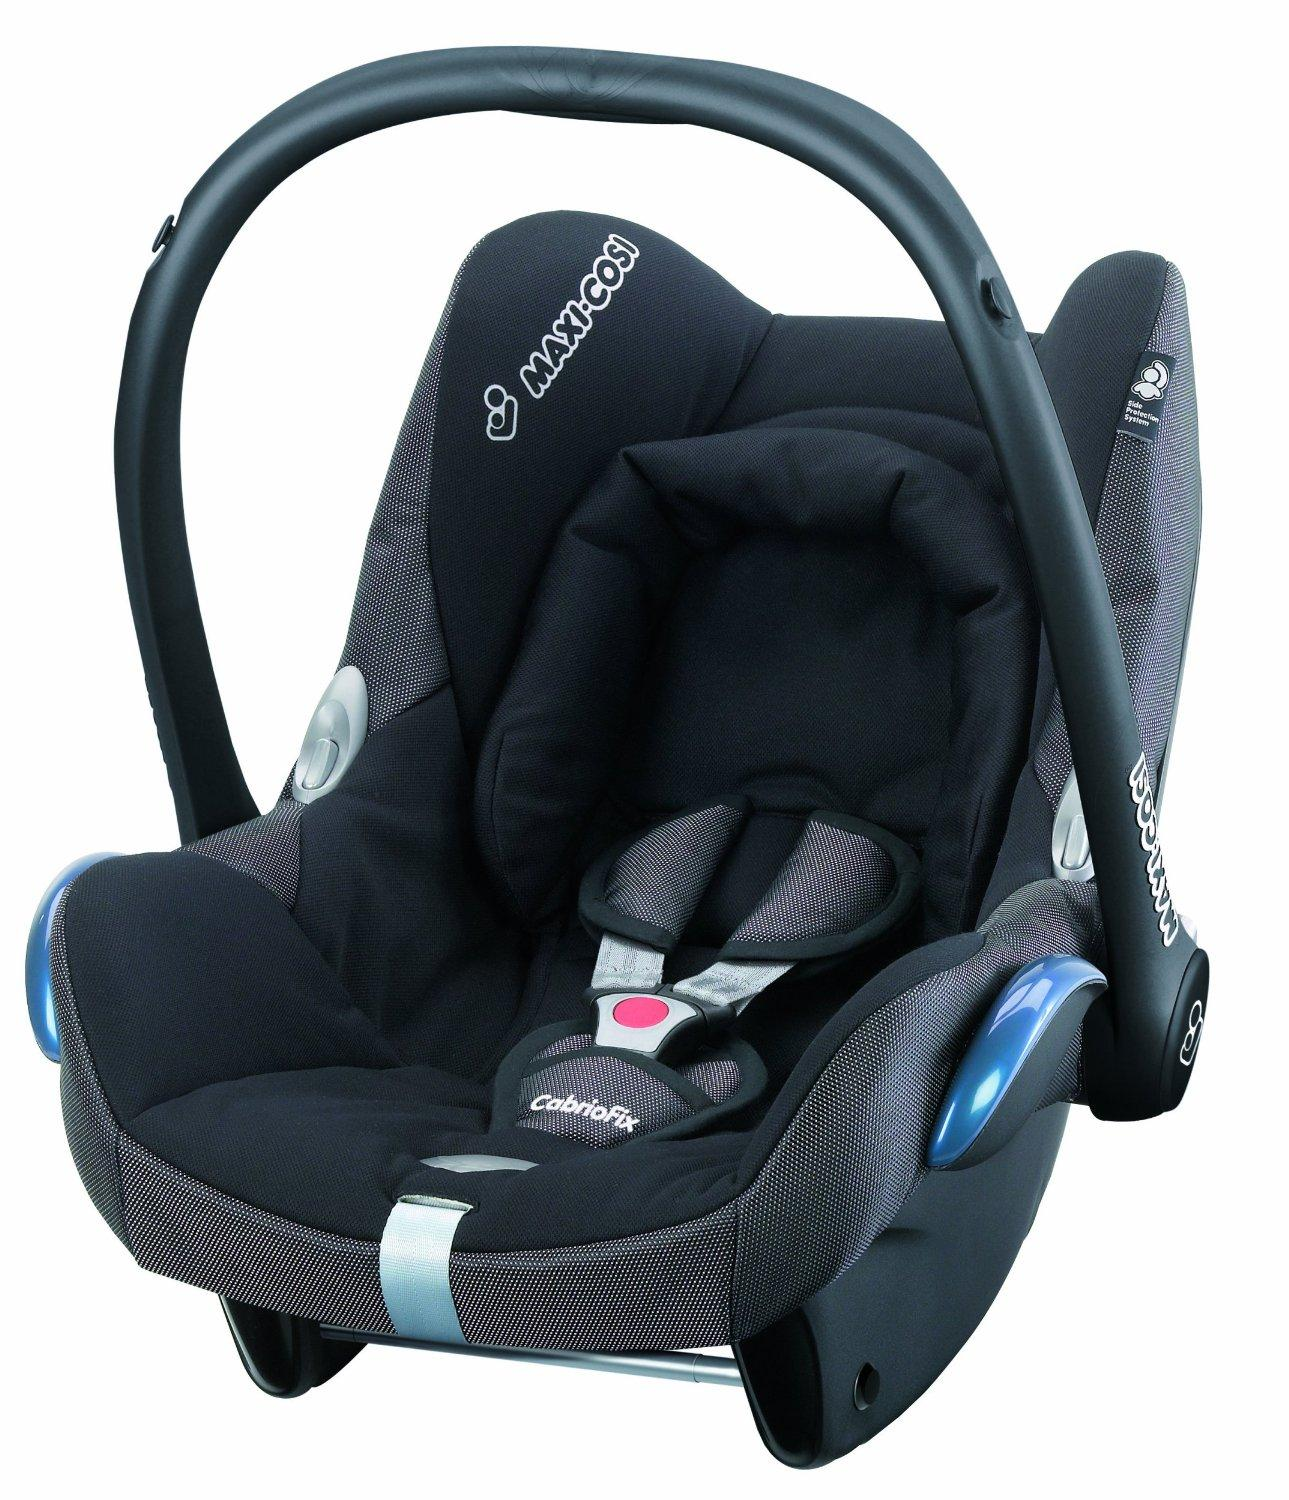 Maxi cosi cabriofix group 0 infant carrier car seat for Housse maxi cosi cabriofix